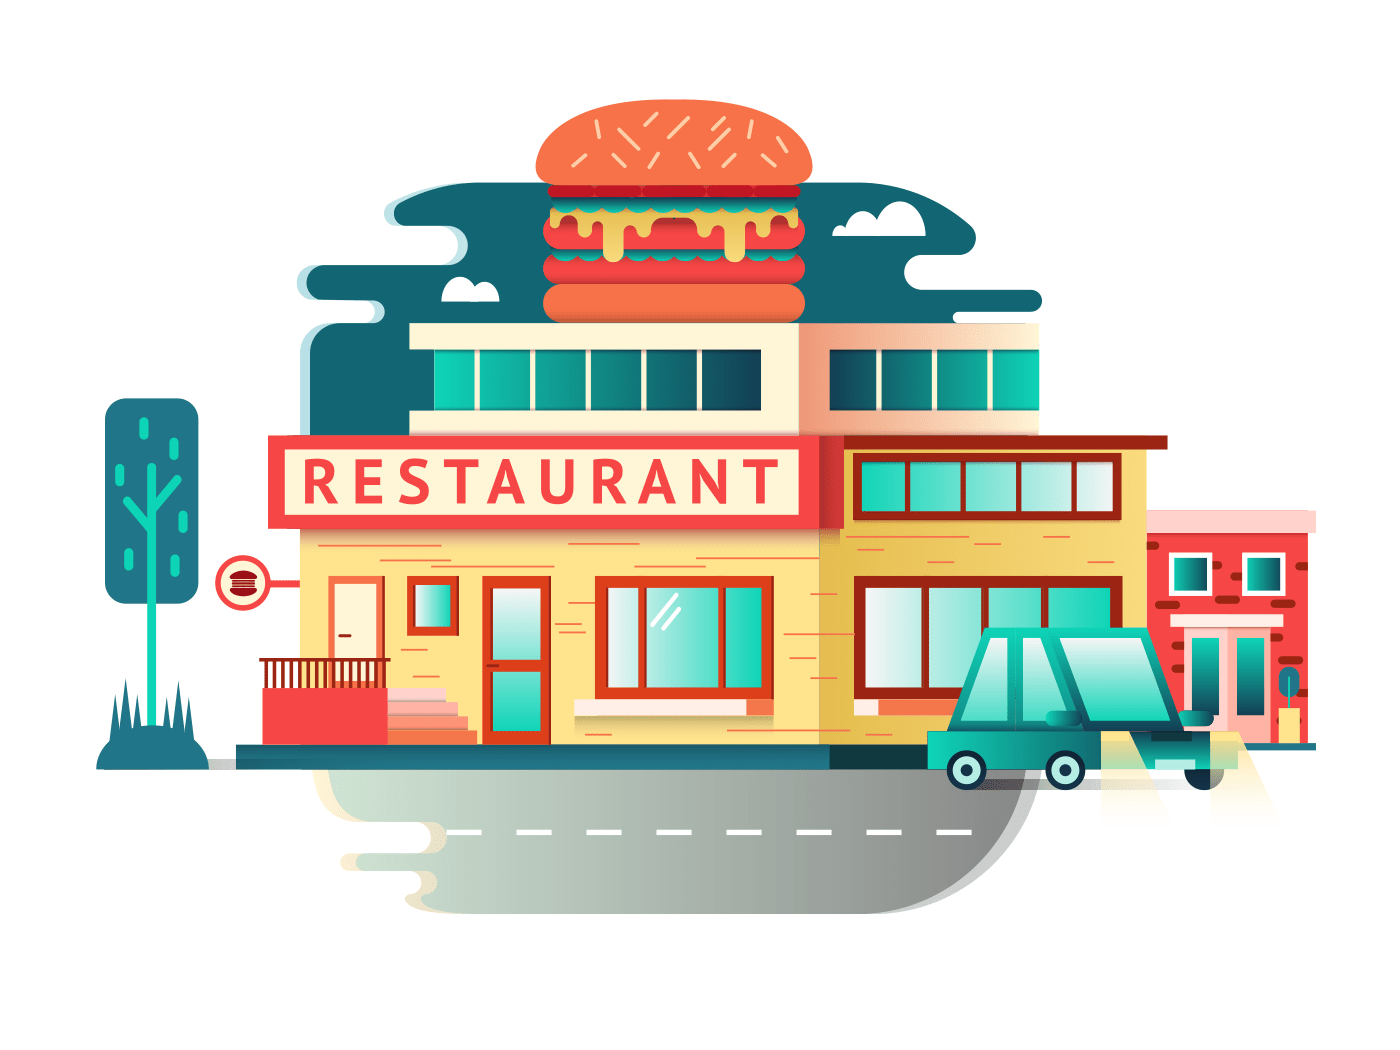 Restaurant building illustration